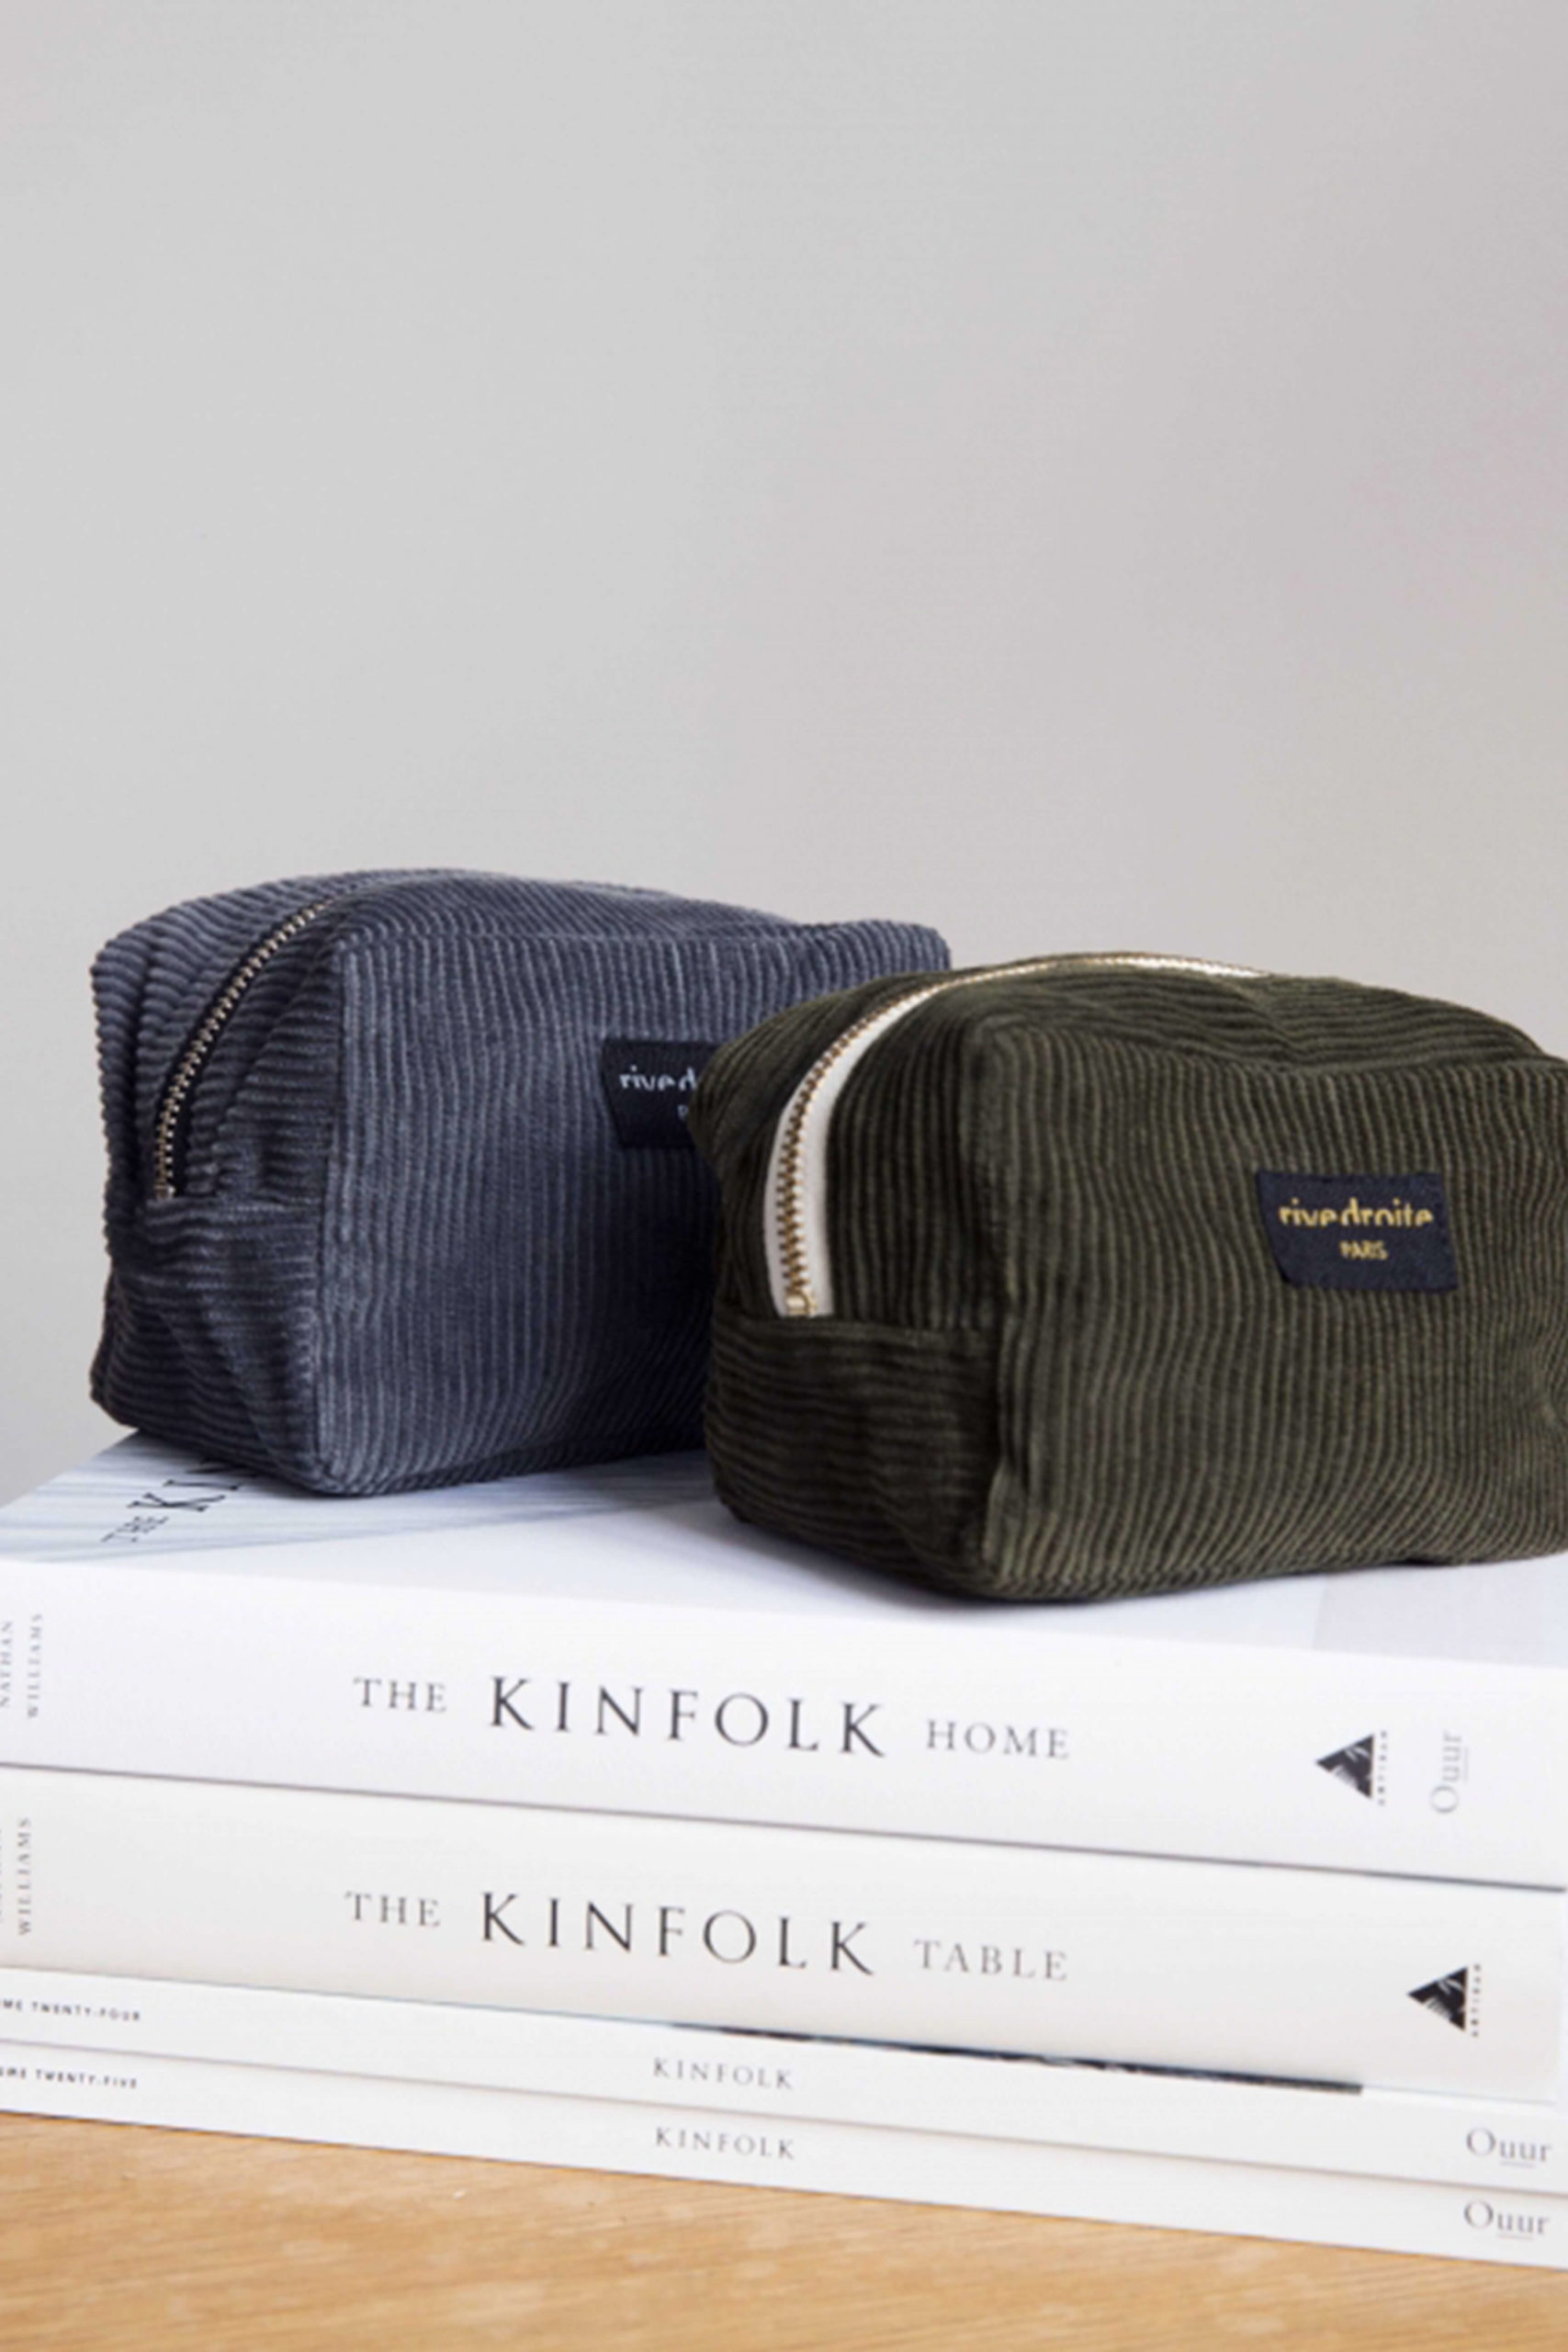 Rive Droite green and denim pouch